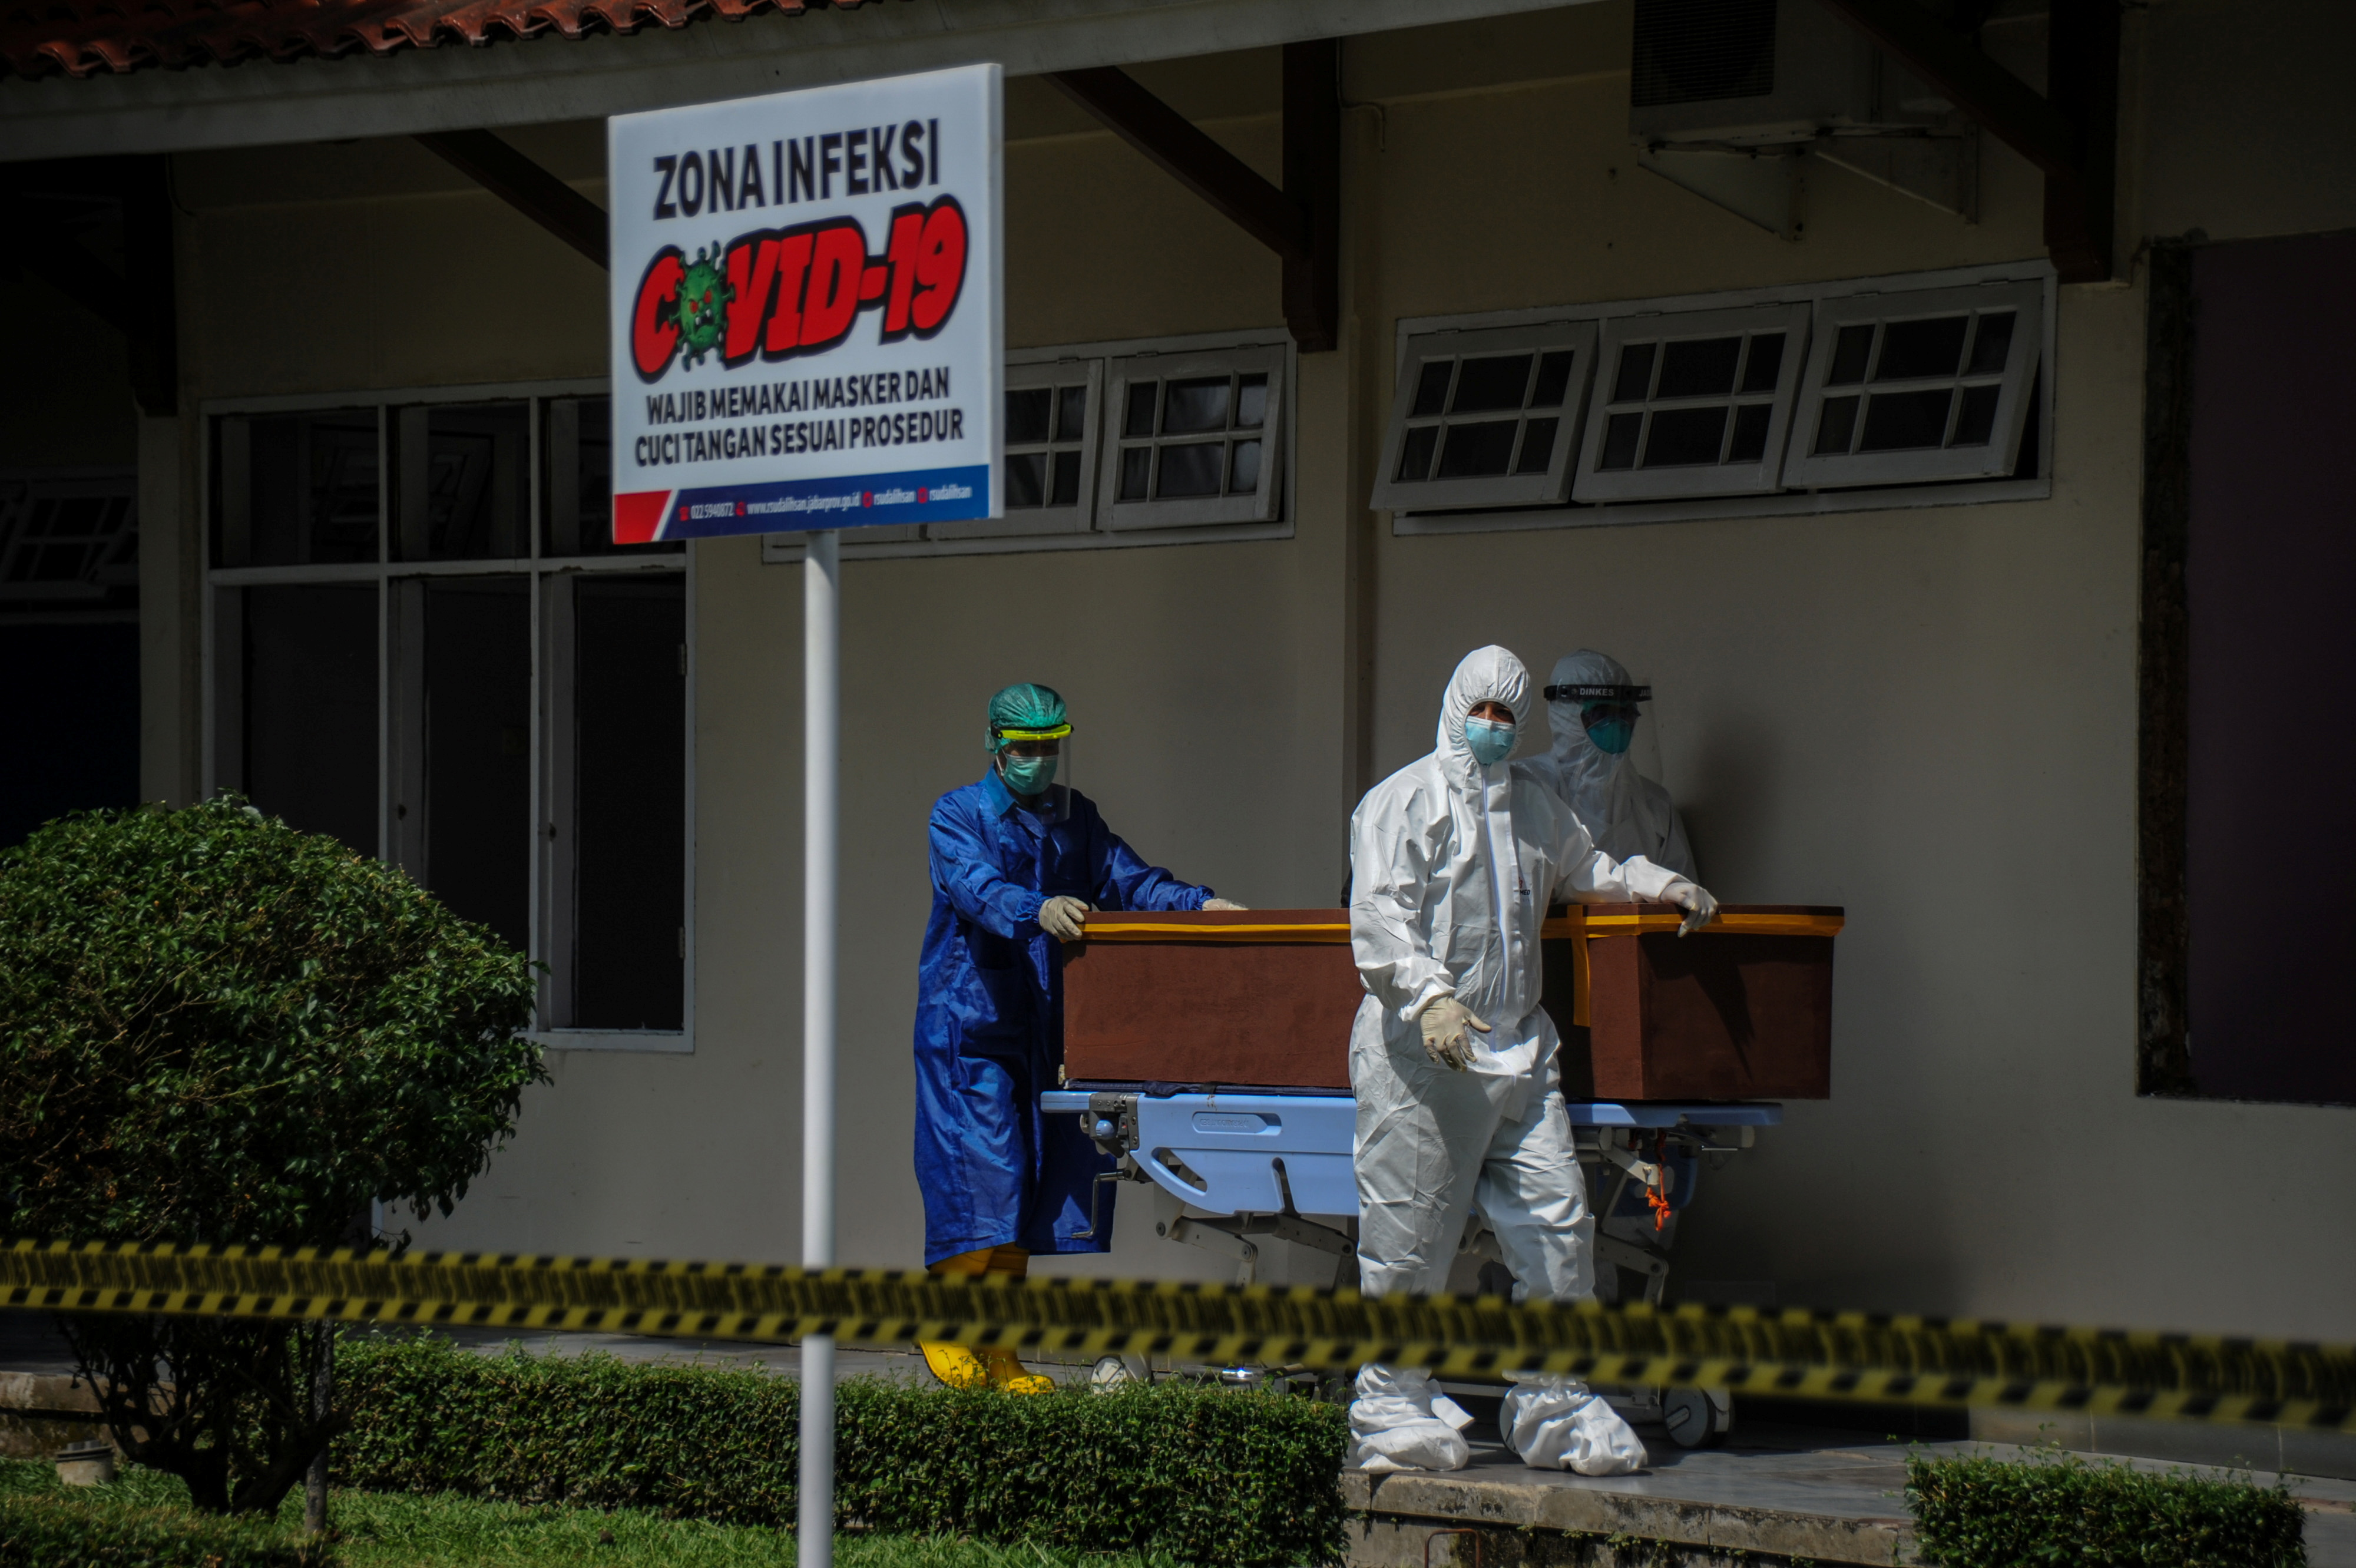 Healthcare workers wearing PPE (personal protective equipment) carry the coffin of a victim of the coronavirus disease (COVID-19) at a hospital in Bandung, West Java Province, Indonesia June 17, 2021, in this photo taken by Antara Foto/Raisan Al Farisi/via Reuters.